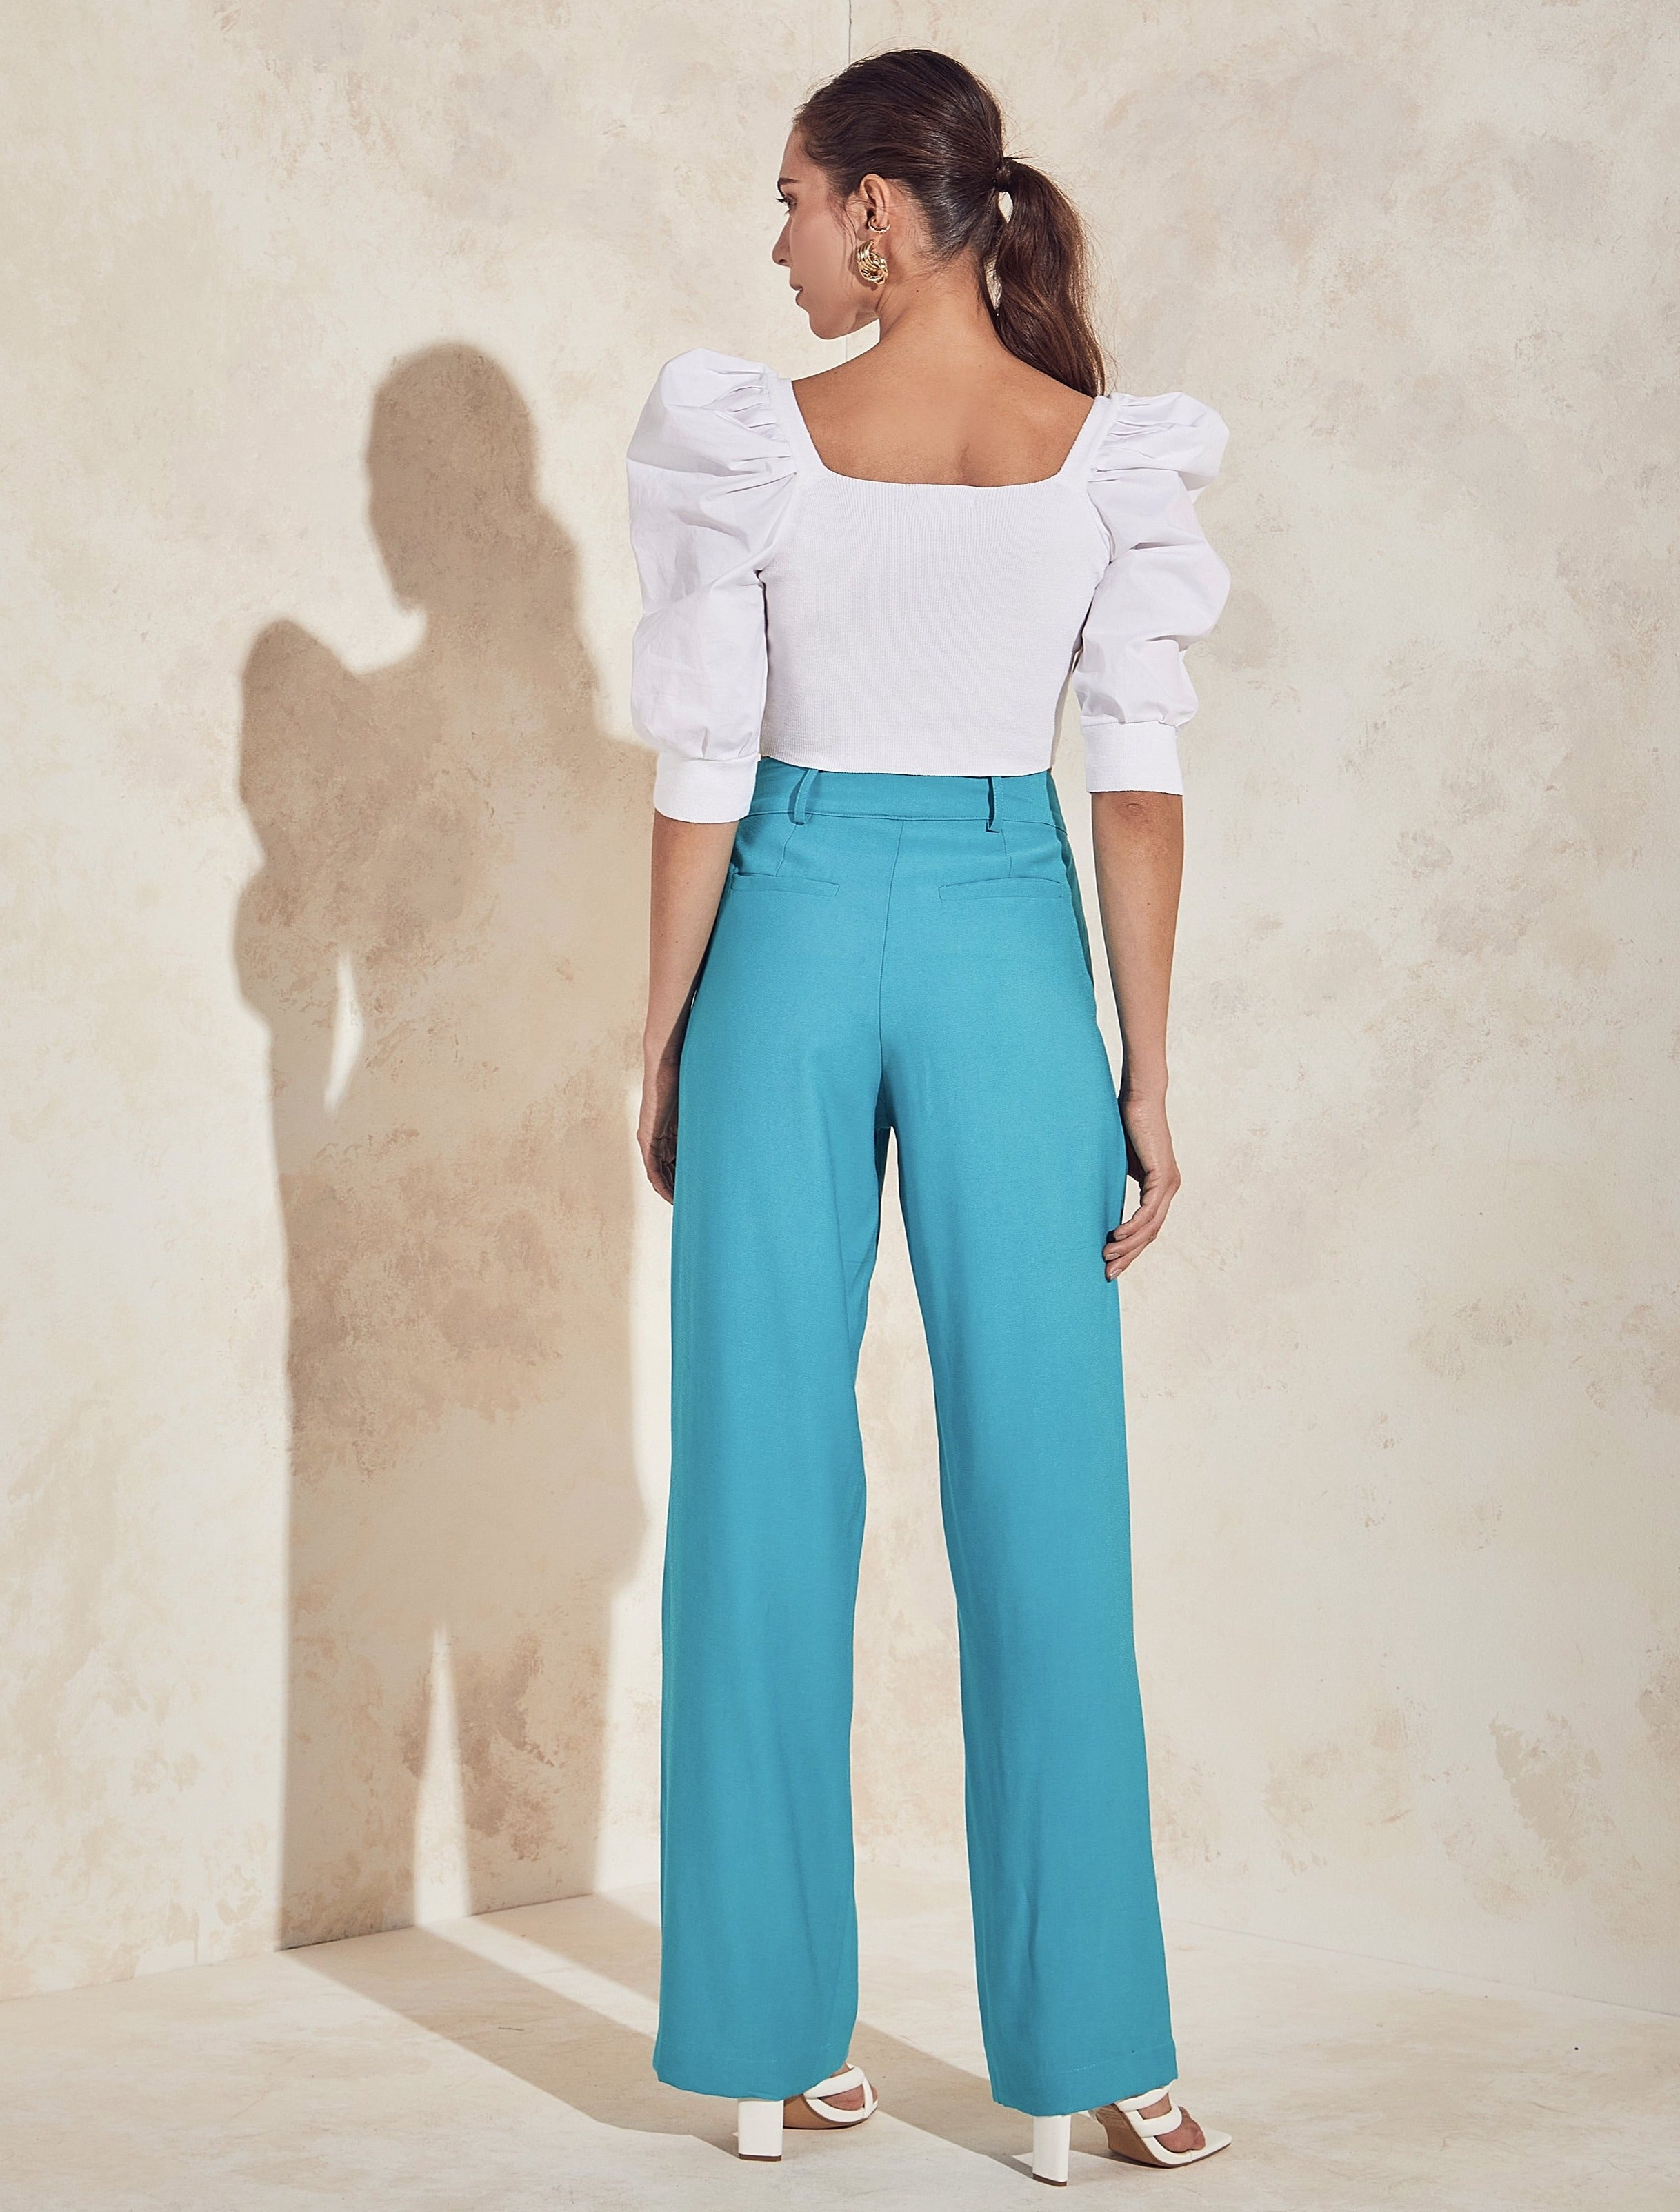 Adele Cut-out Wide Leg Pants in Teal